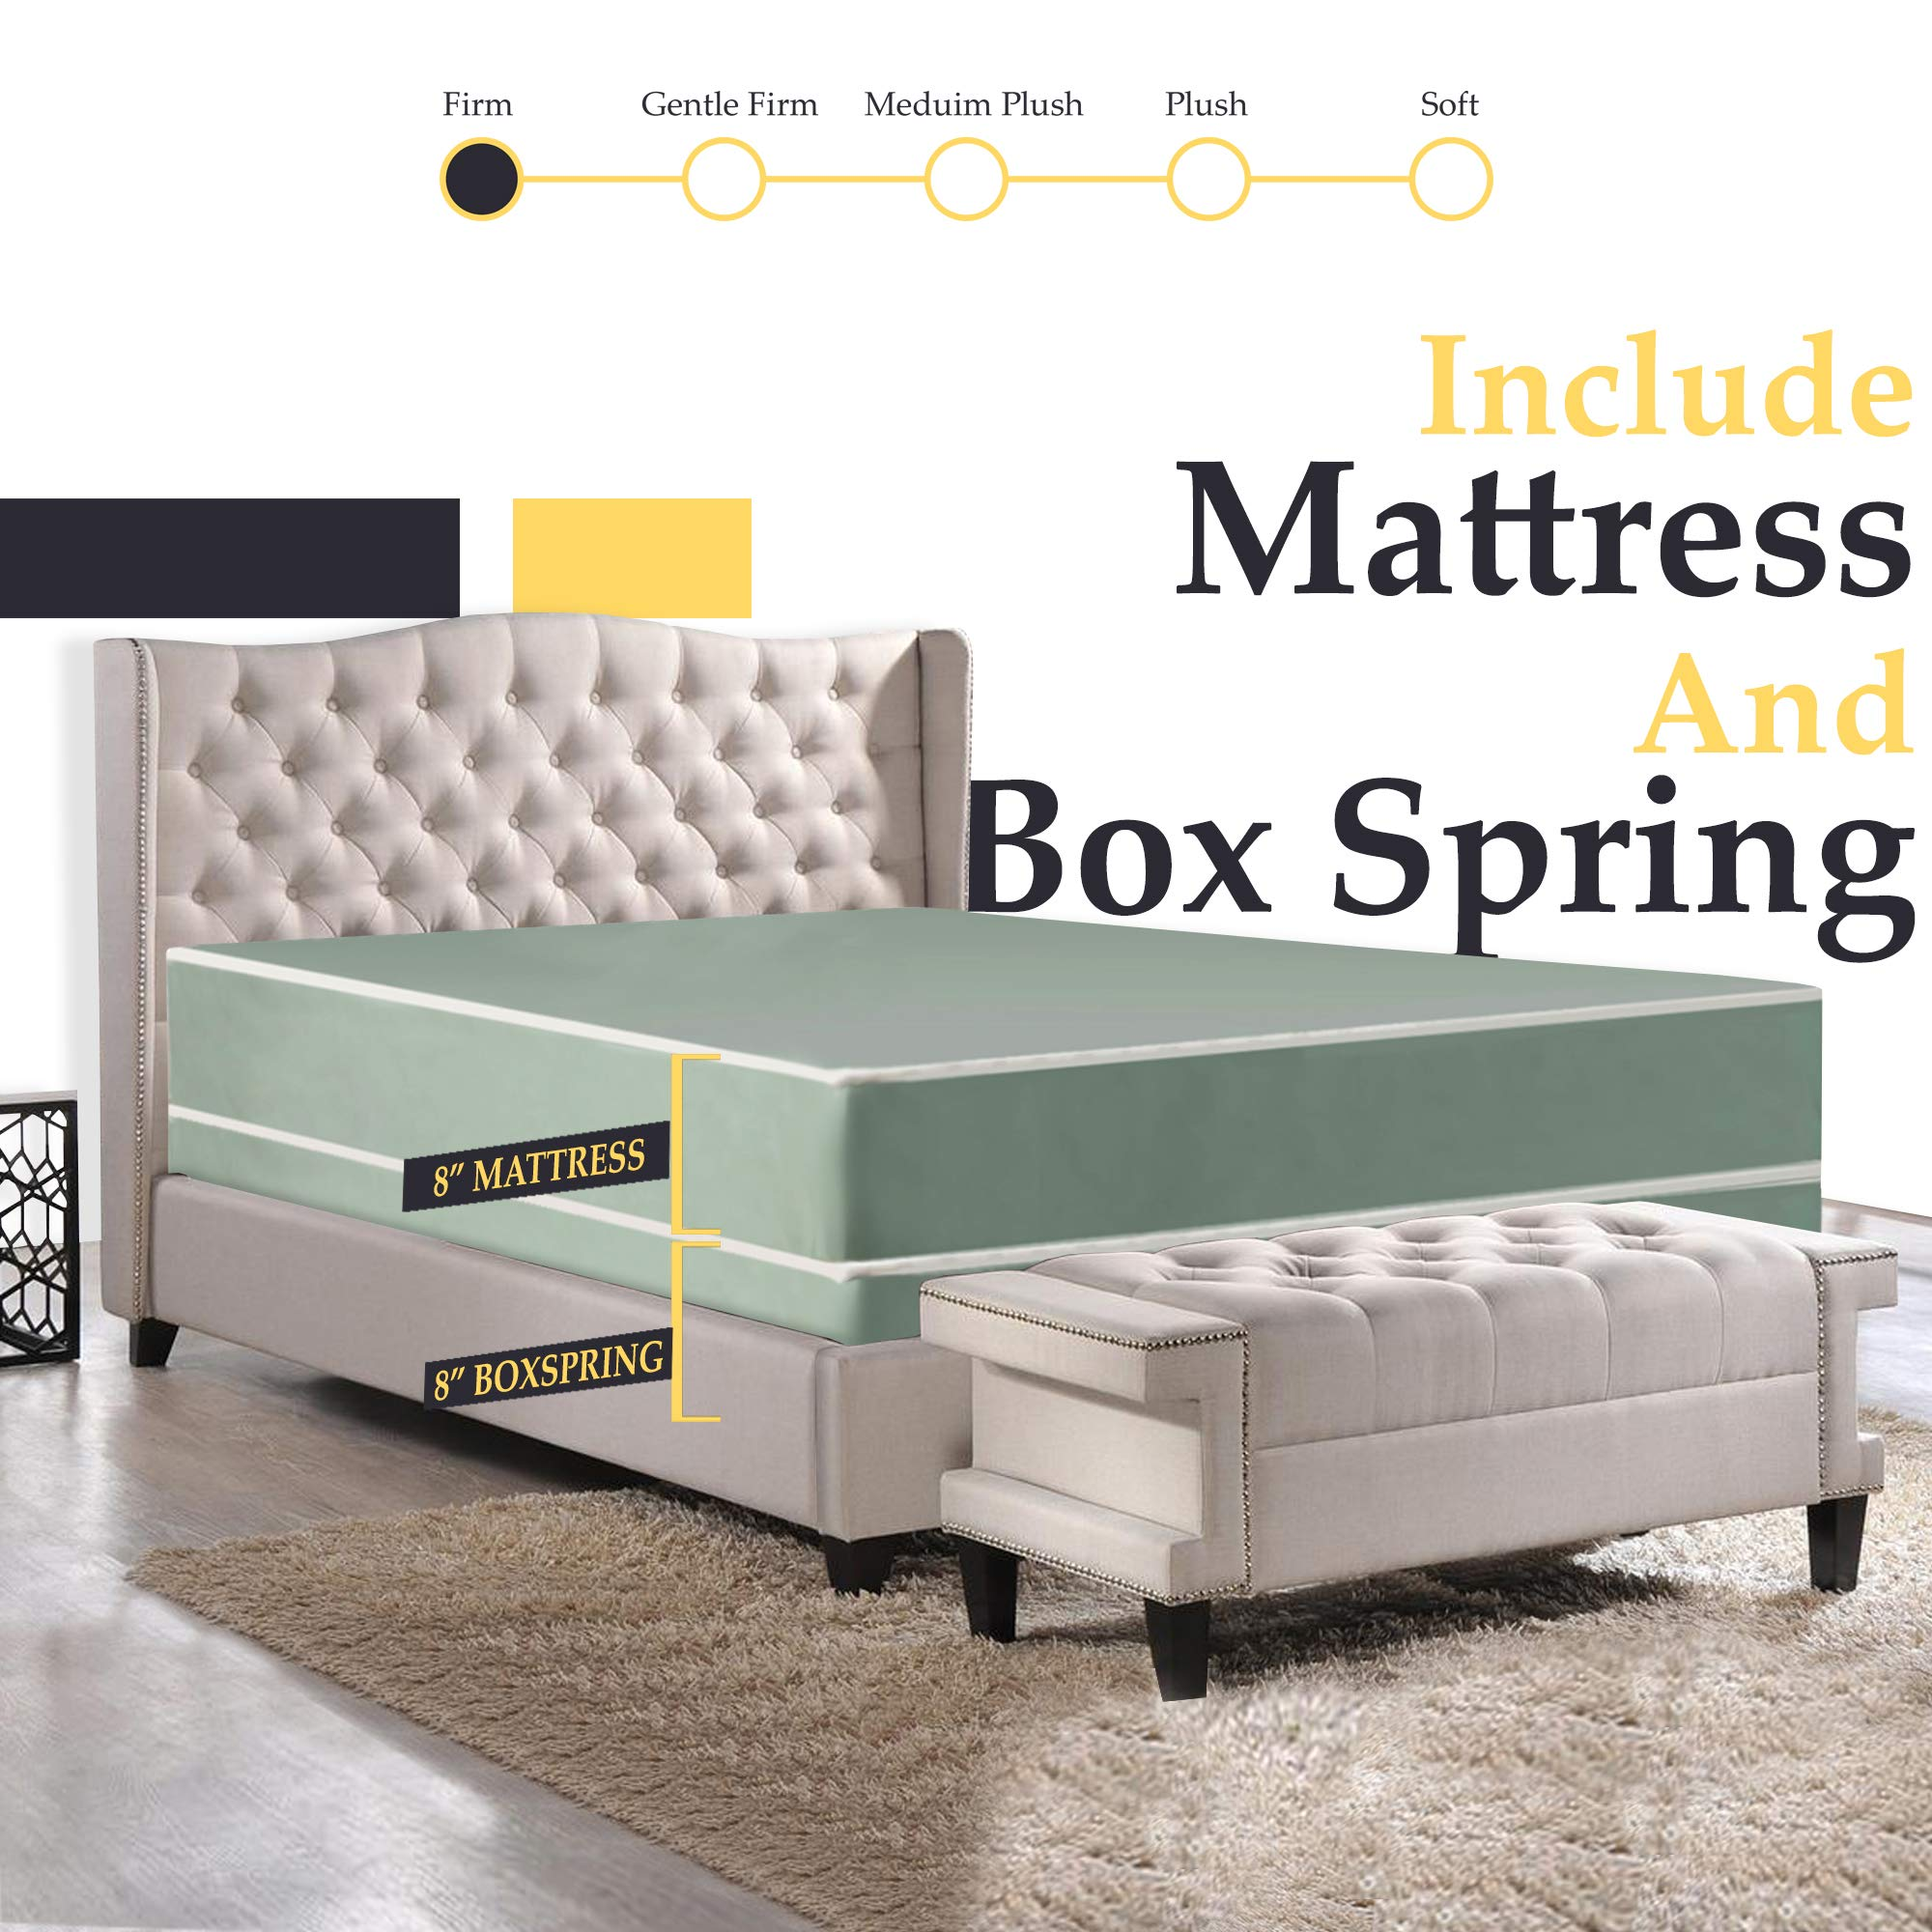 8-Inch Firm Double sided Tight top Innerspring Mattress And 8-Inch Fully Assembled Boxspring/Foundation Set by Nutan